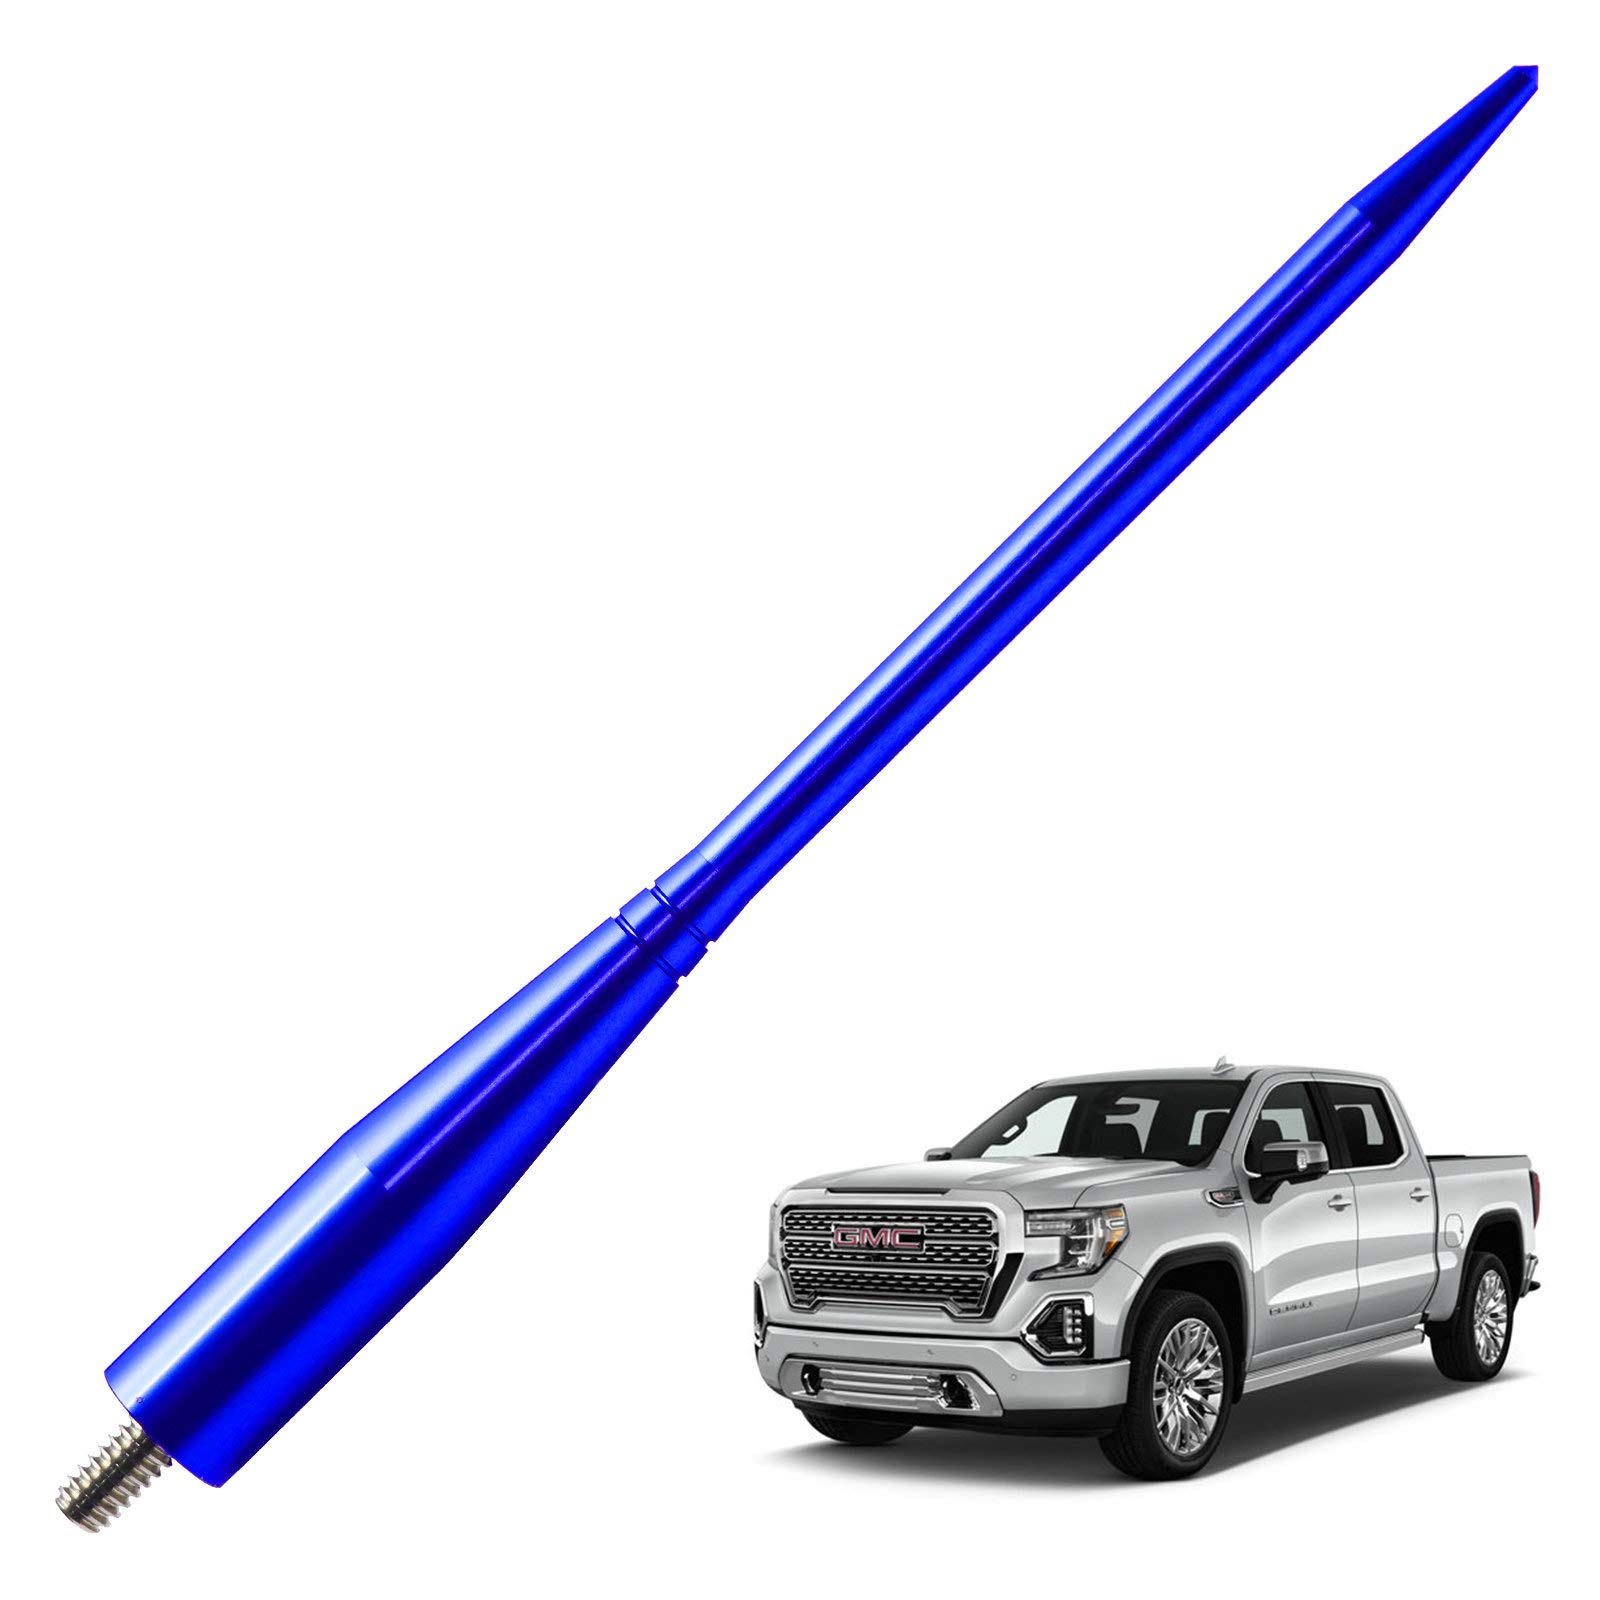 JAPower Replacement Antenna Compatible with GMC Sierra 1999-2006 | 6.75 inches-Blue